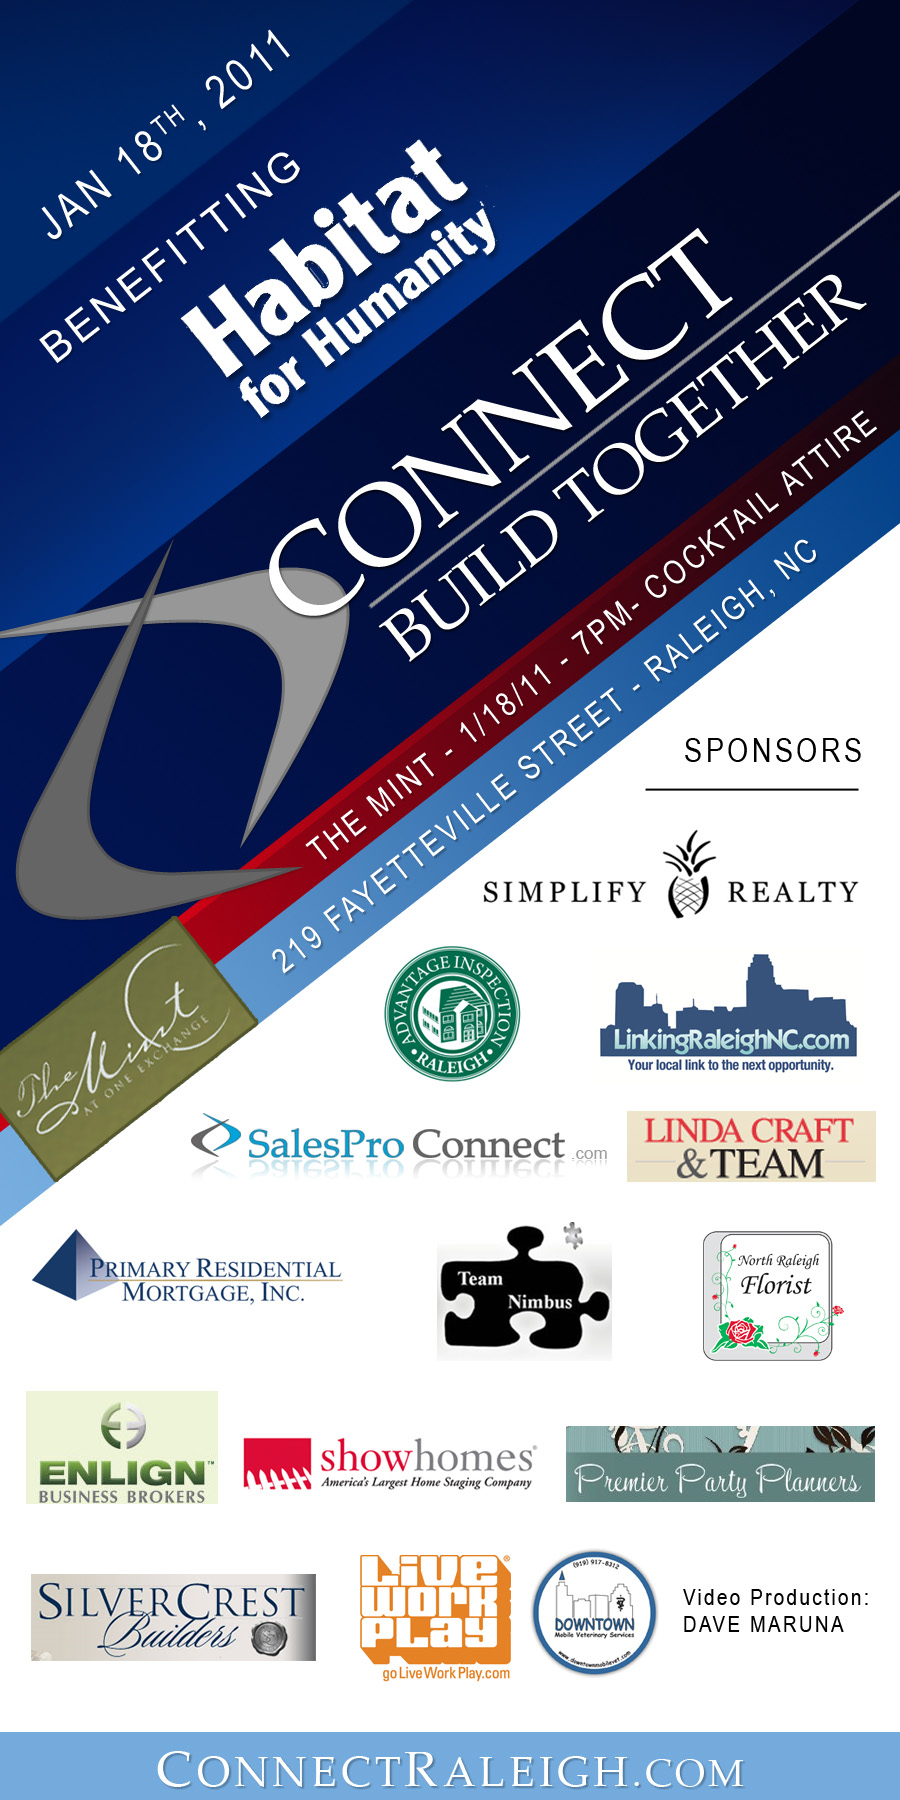 Connect - Build Together - 1/18/11 - 7pm at The Mint in Downtown Raleigh, NC